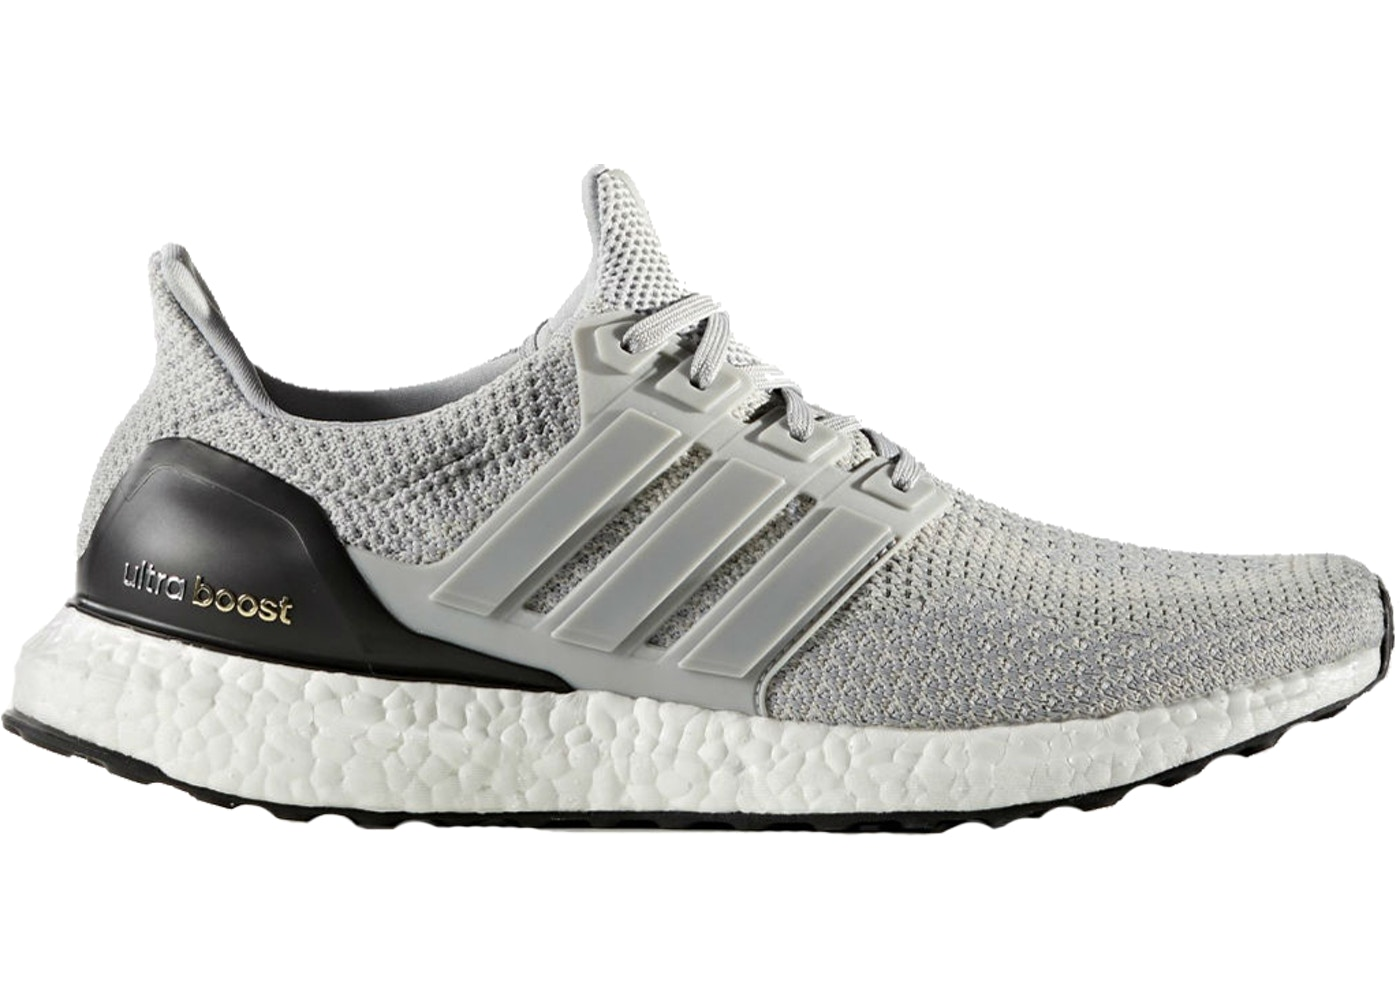 get cheap detailed pictures detailing adidas Ultra Boost Size 7 Shoes - Volatility